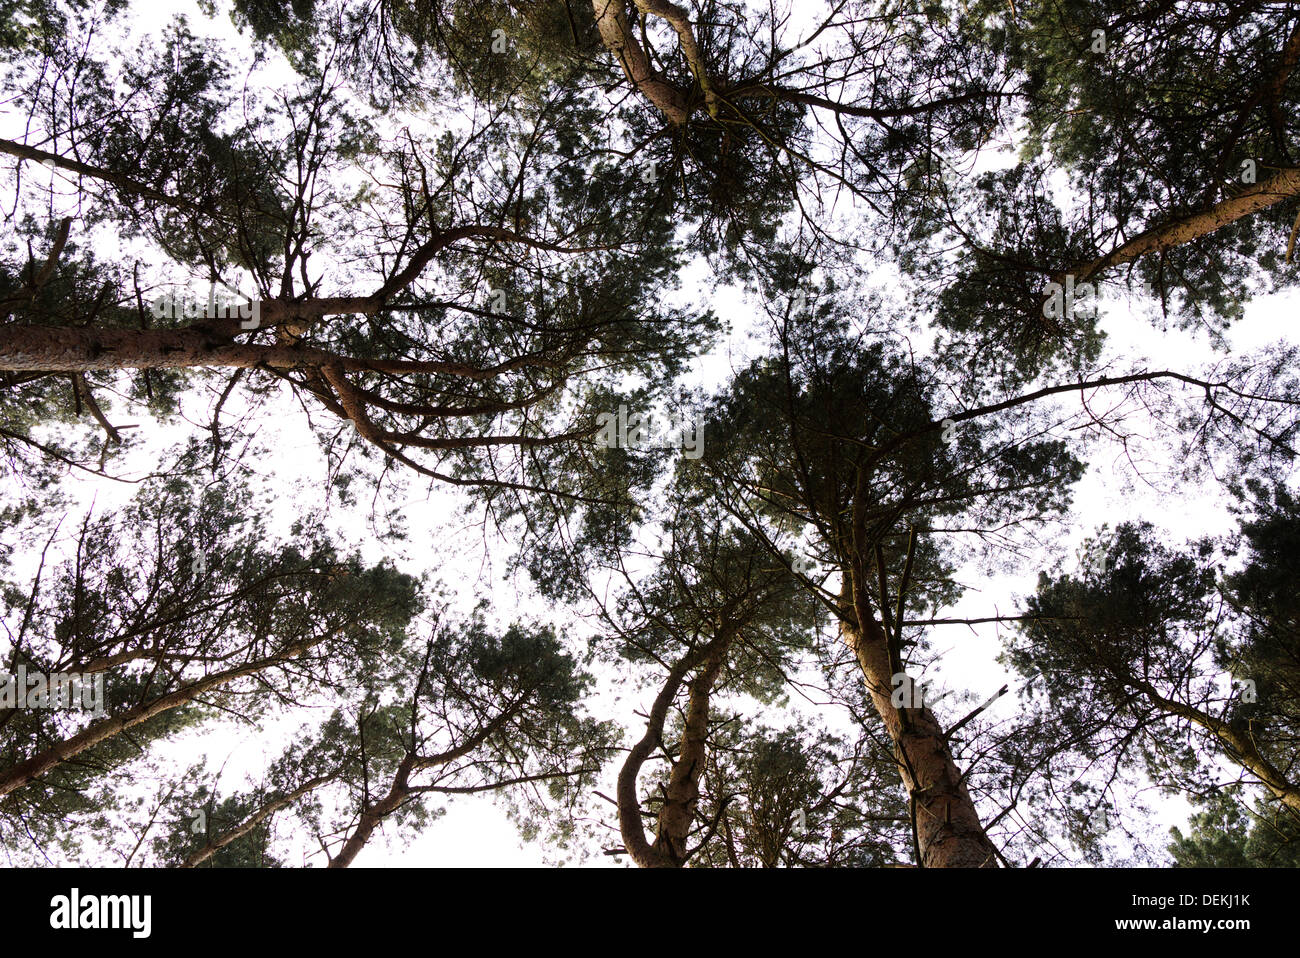 looking at the sky the conifers make a mottled pattern. Like camouflage - Stock Image